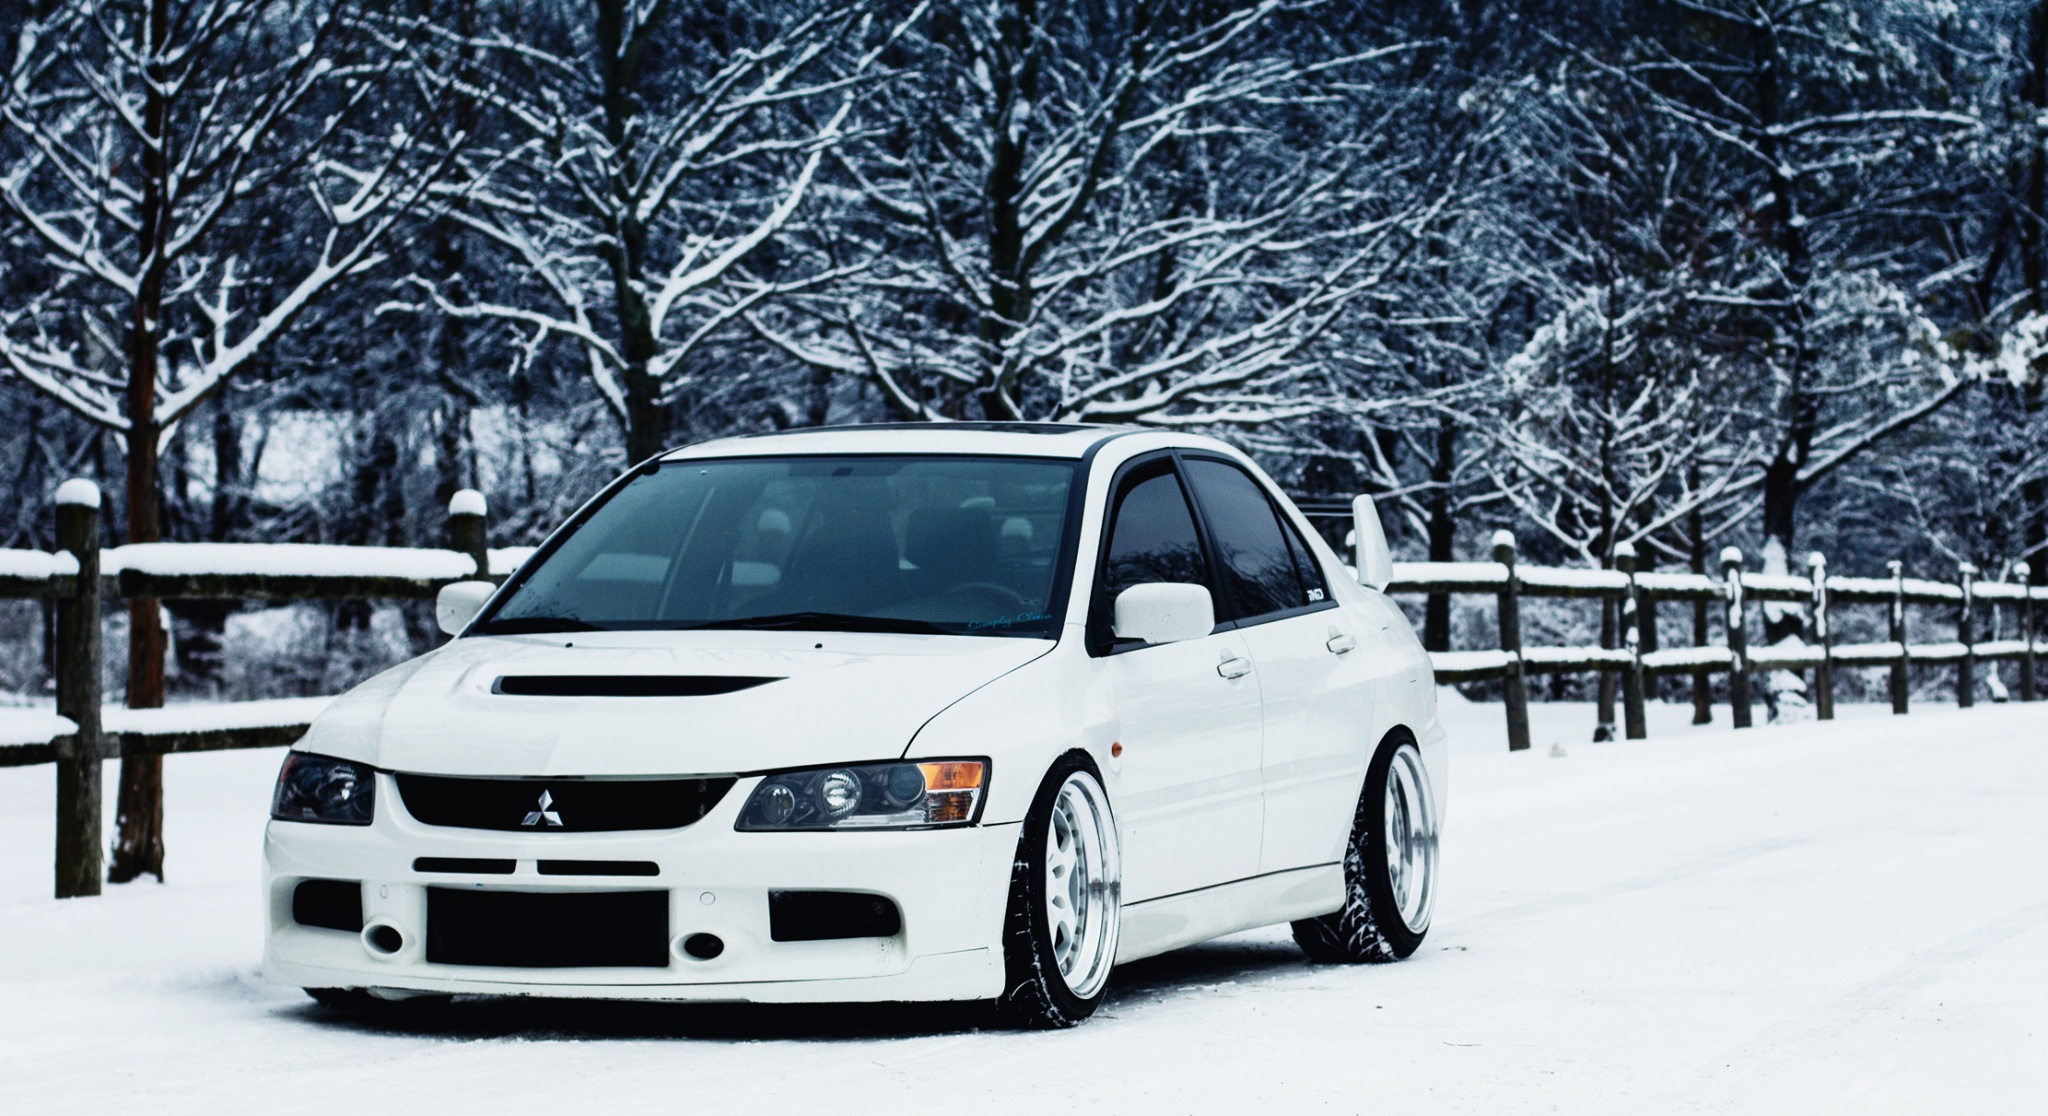 Tuned Lancer Evo Wallpaper 2048x1116 ID57390 2048x1116